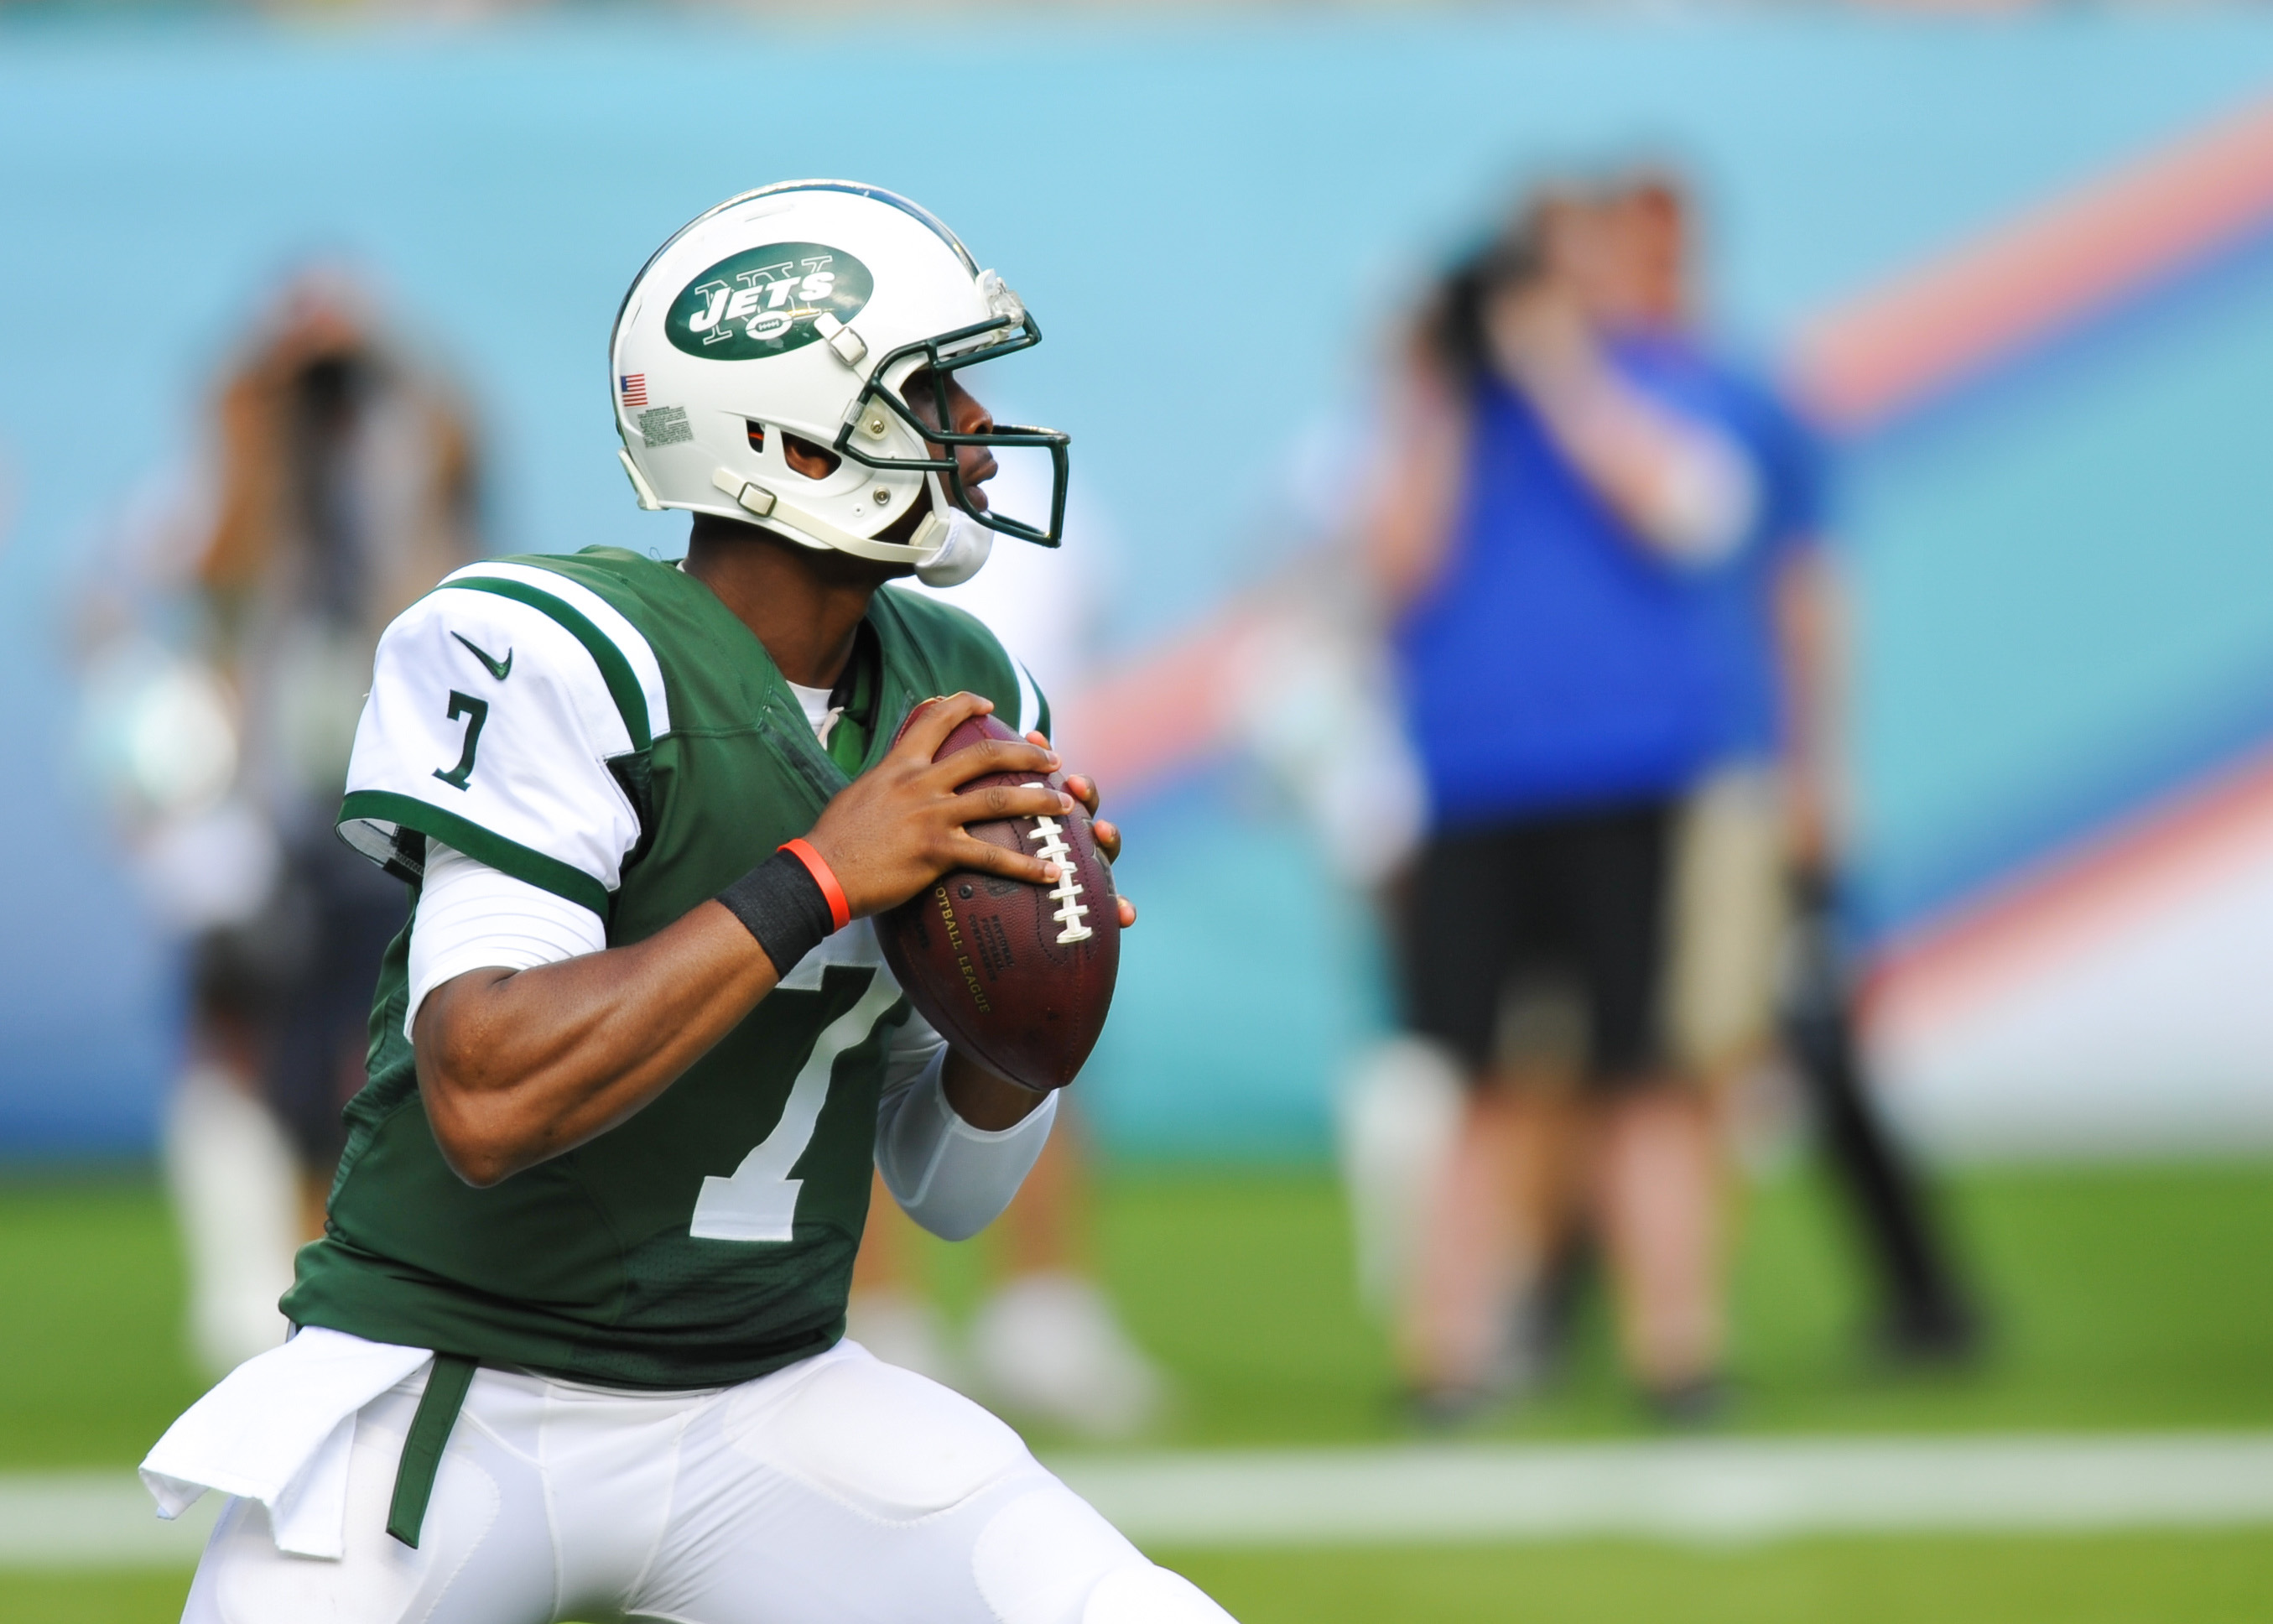 Jets coach Todd Bowles still evaluating Geno Smith